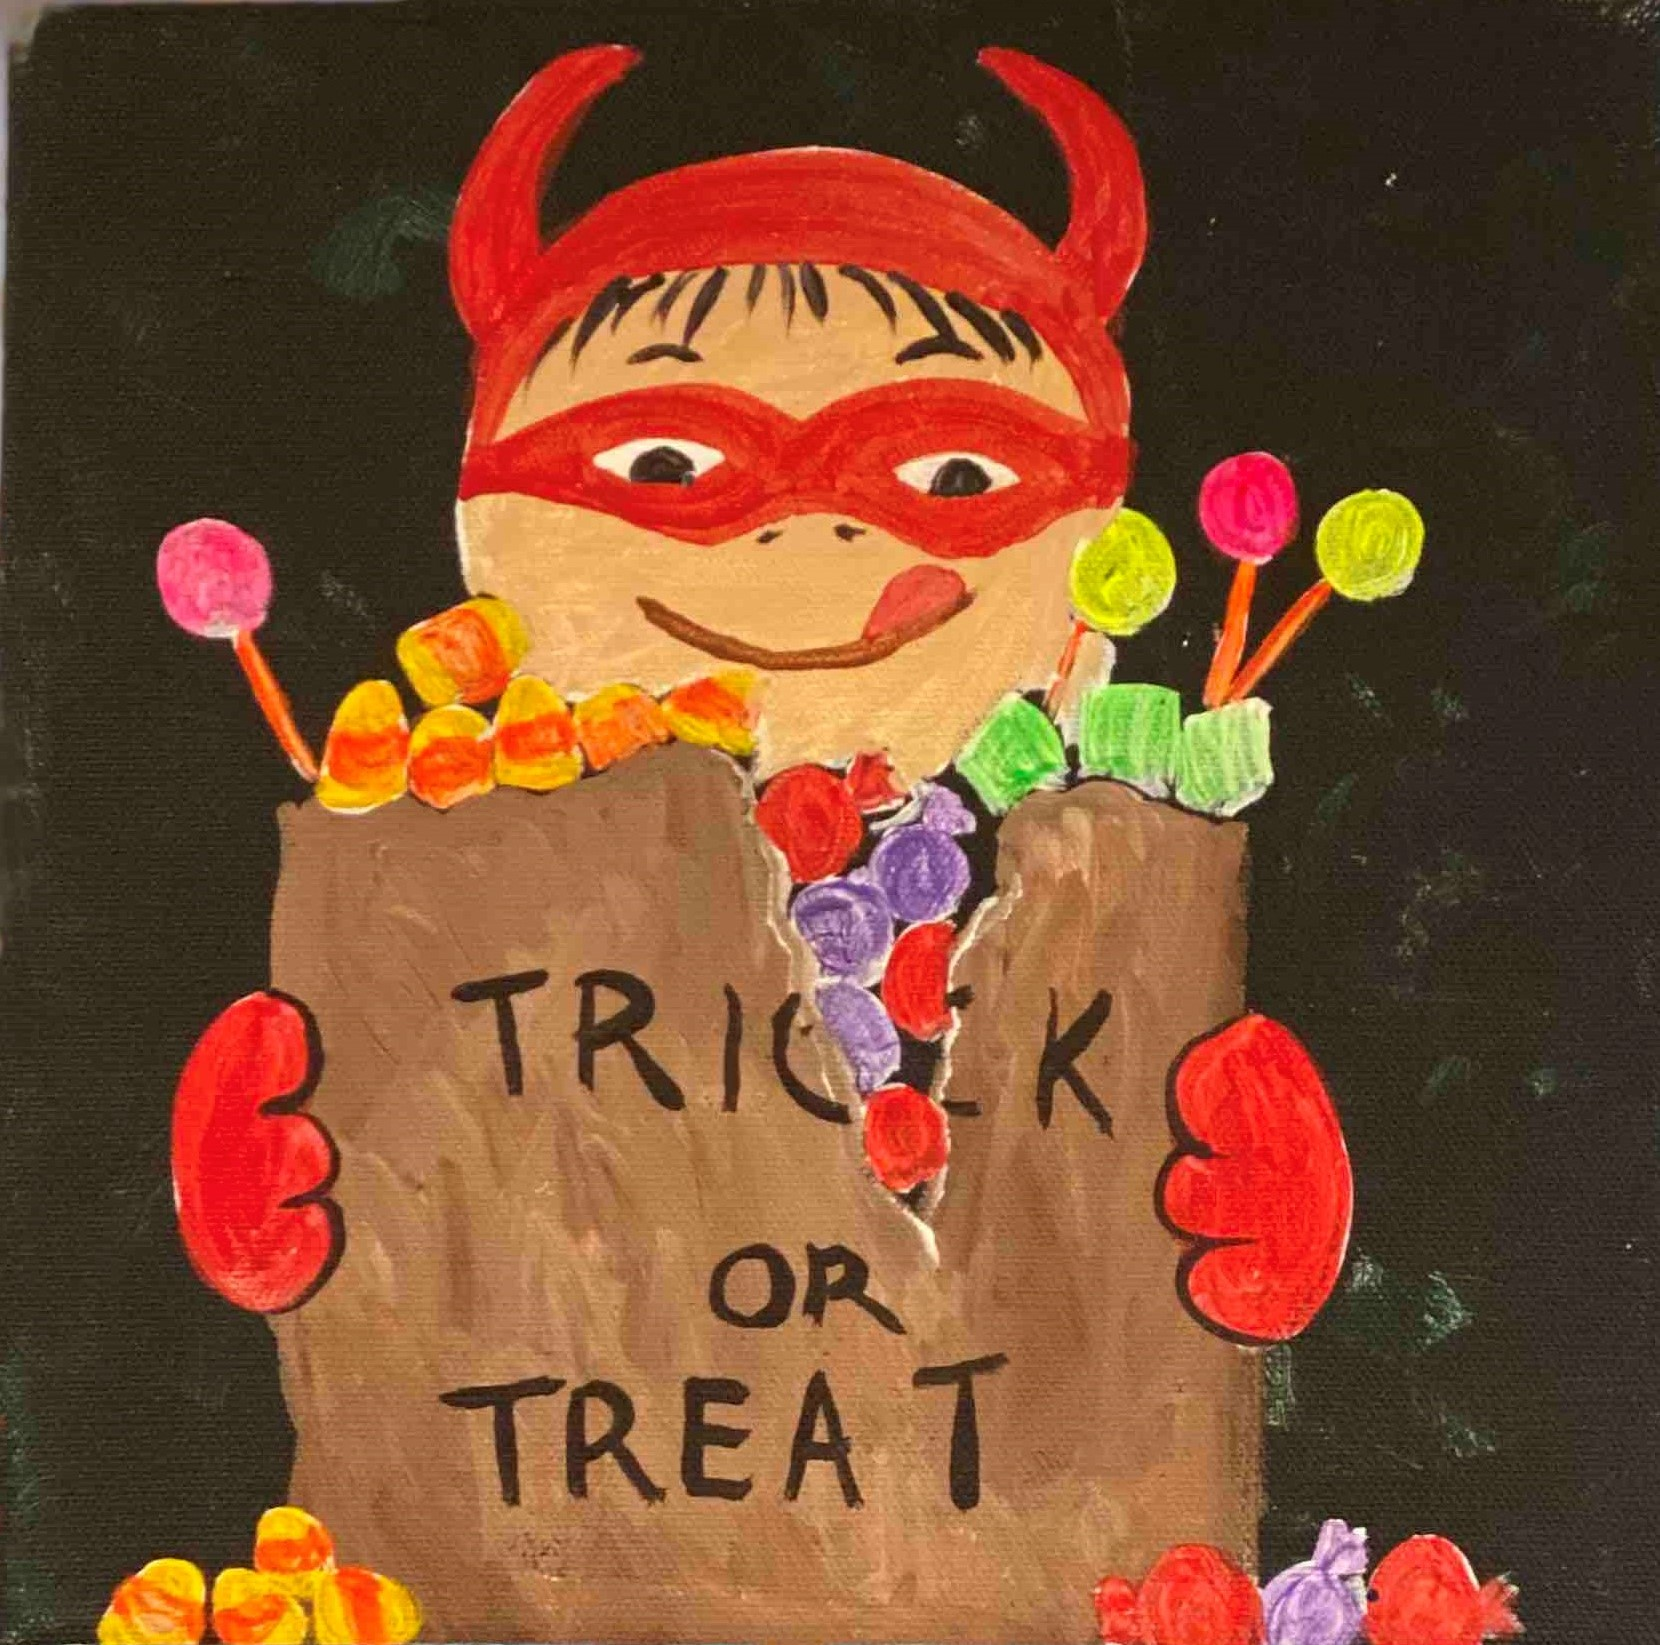 https://studio.pinotspalette.com/brandon/images/trick%20or%20treat%20devil.jpg